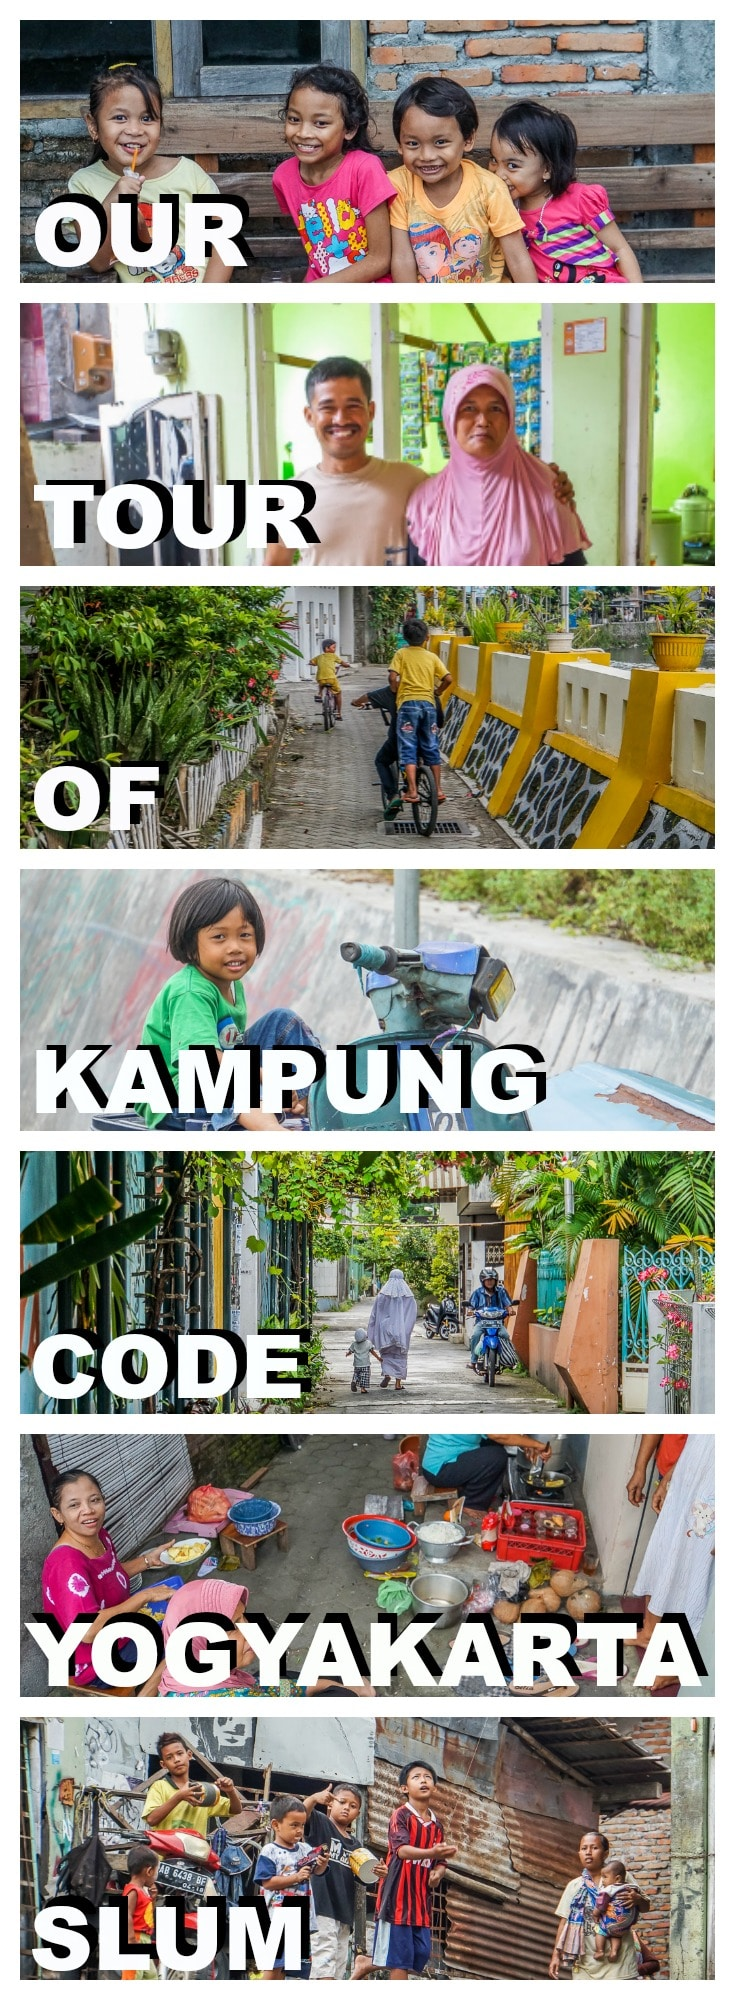 Kampung Code is a former slum neighbourhood in Yogyakarta, Central Java. Join us on this alternative village tour where we meet with the locals.